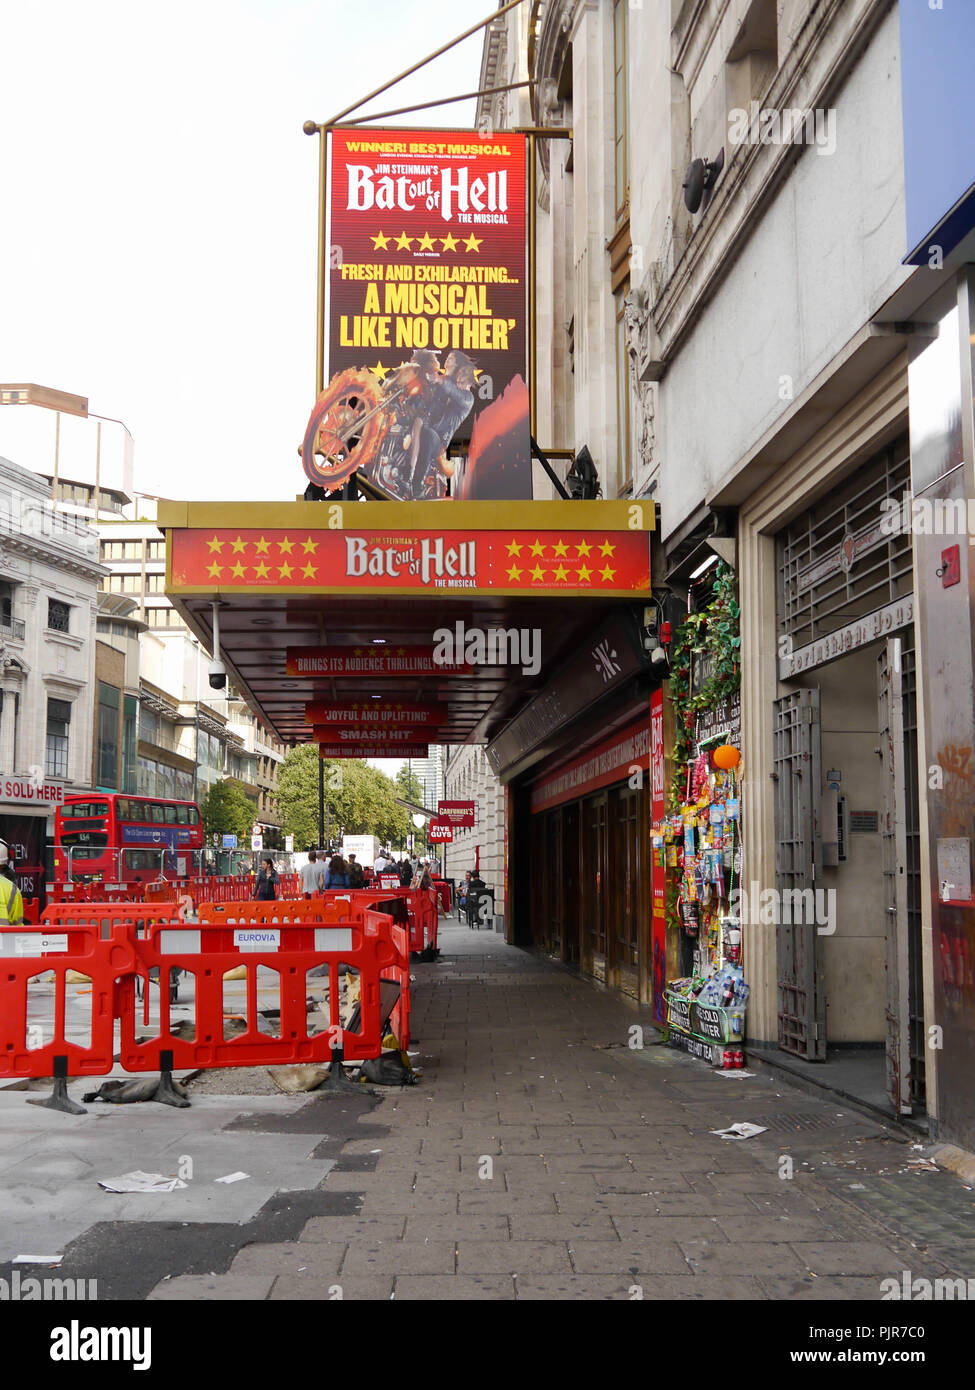 The Dominion theatre in London, advertising the musical 'Bat out of hell' - Stock Image